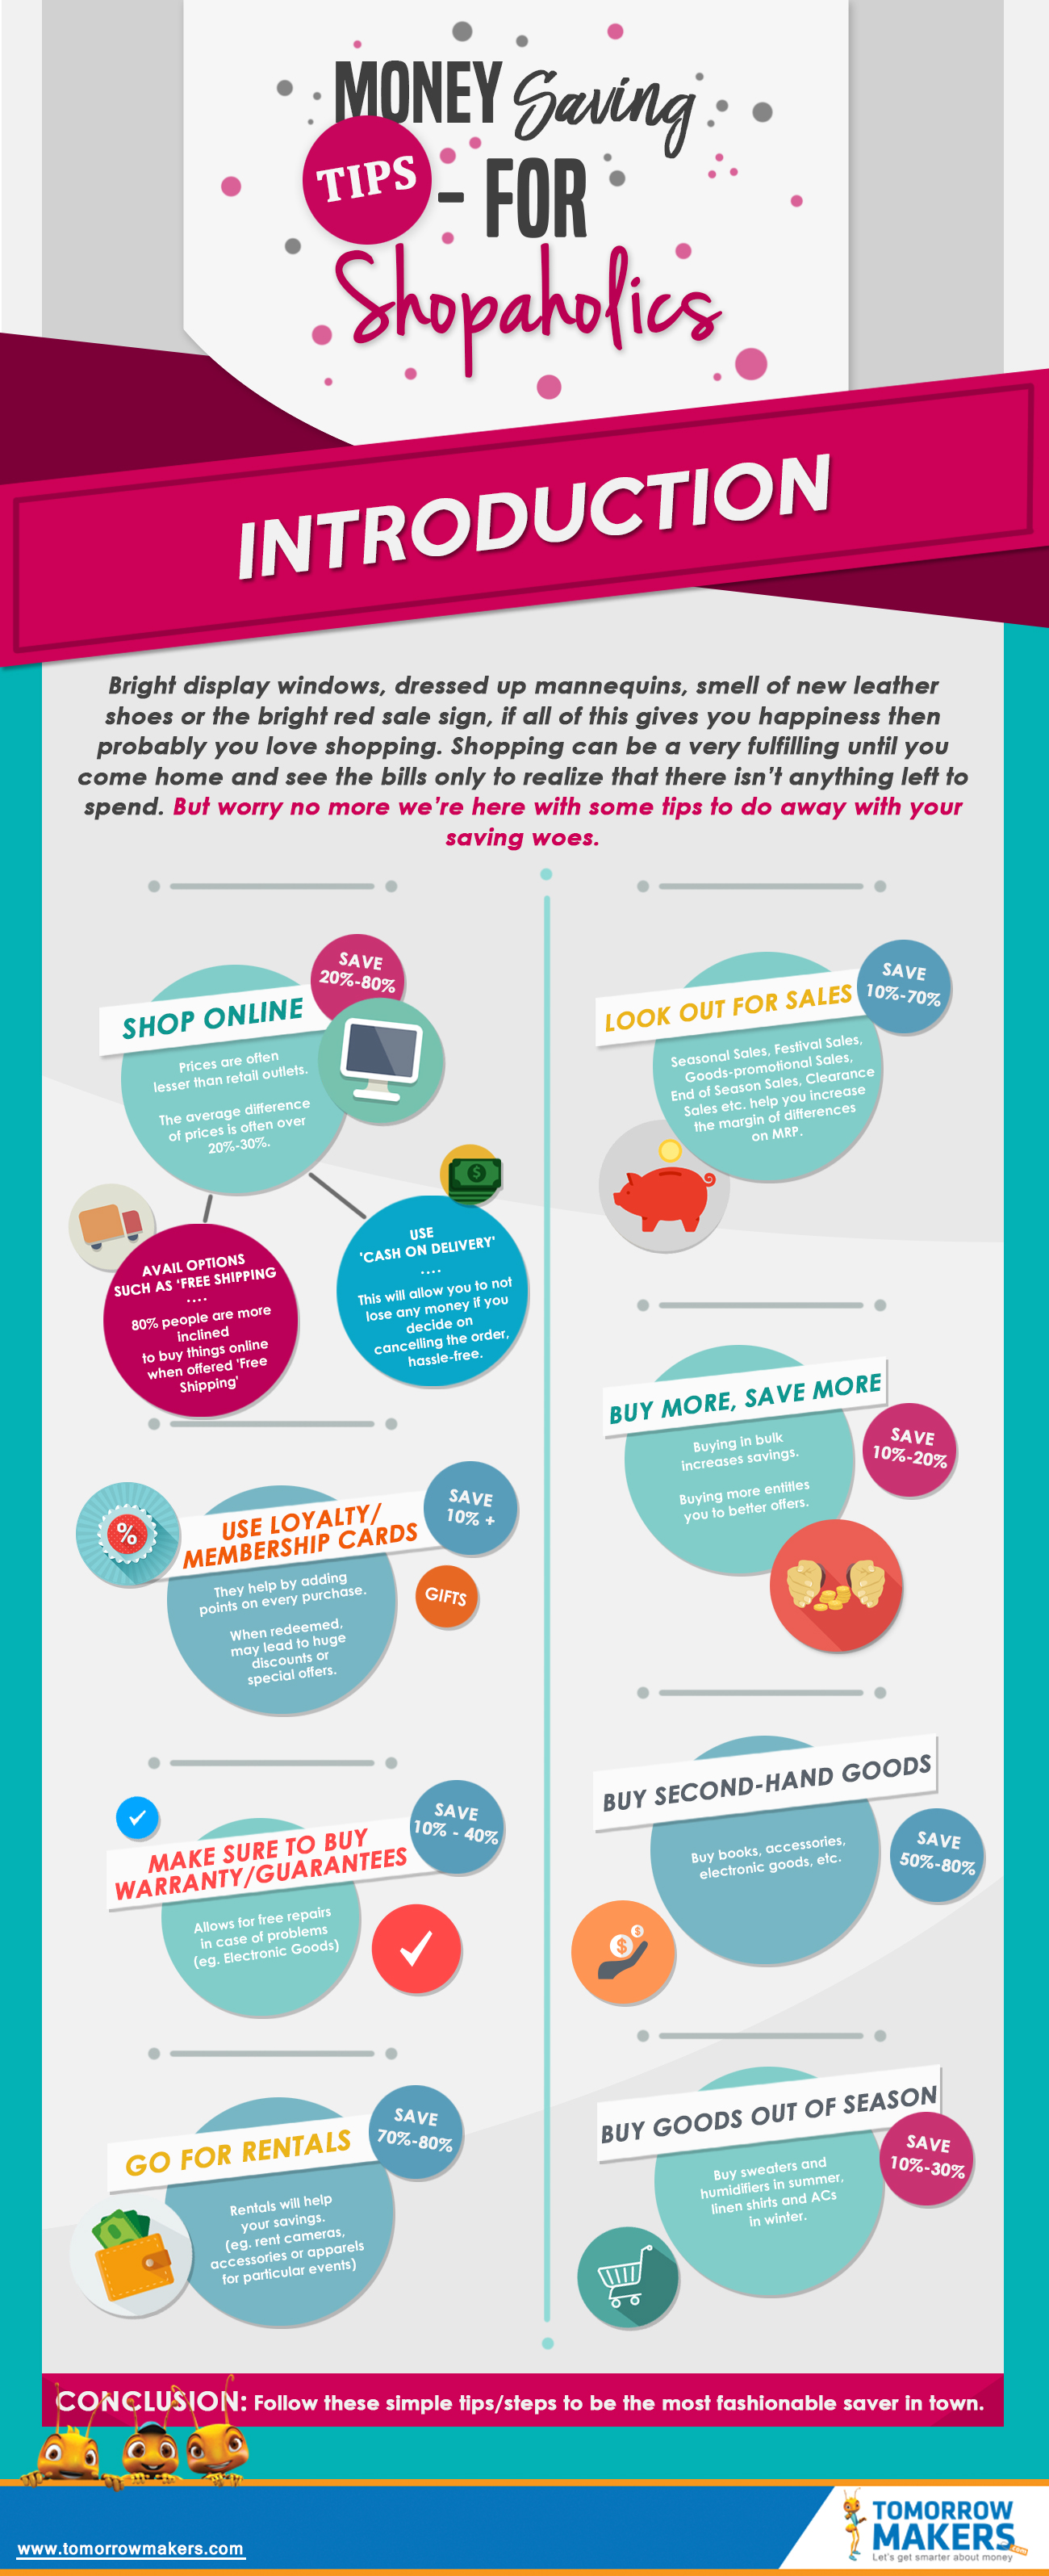 money-saving-tips-for-shopaholics-infographic